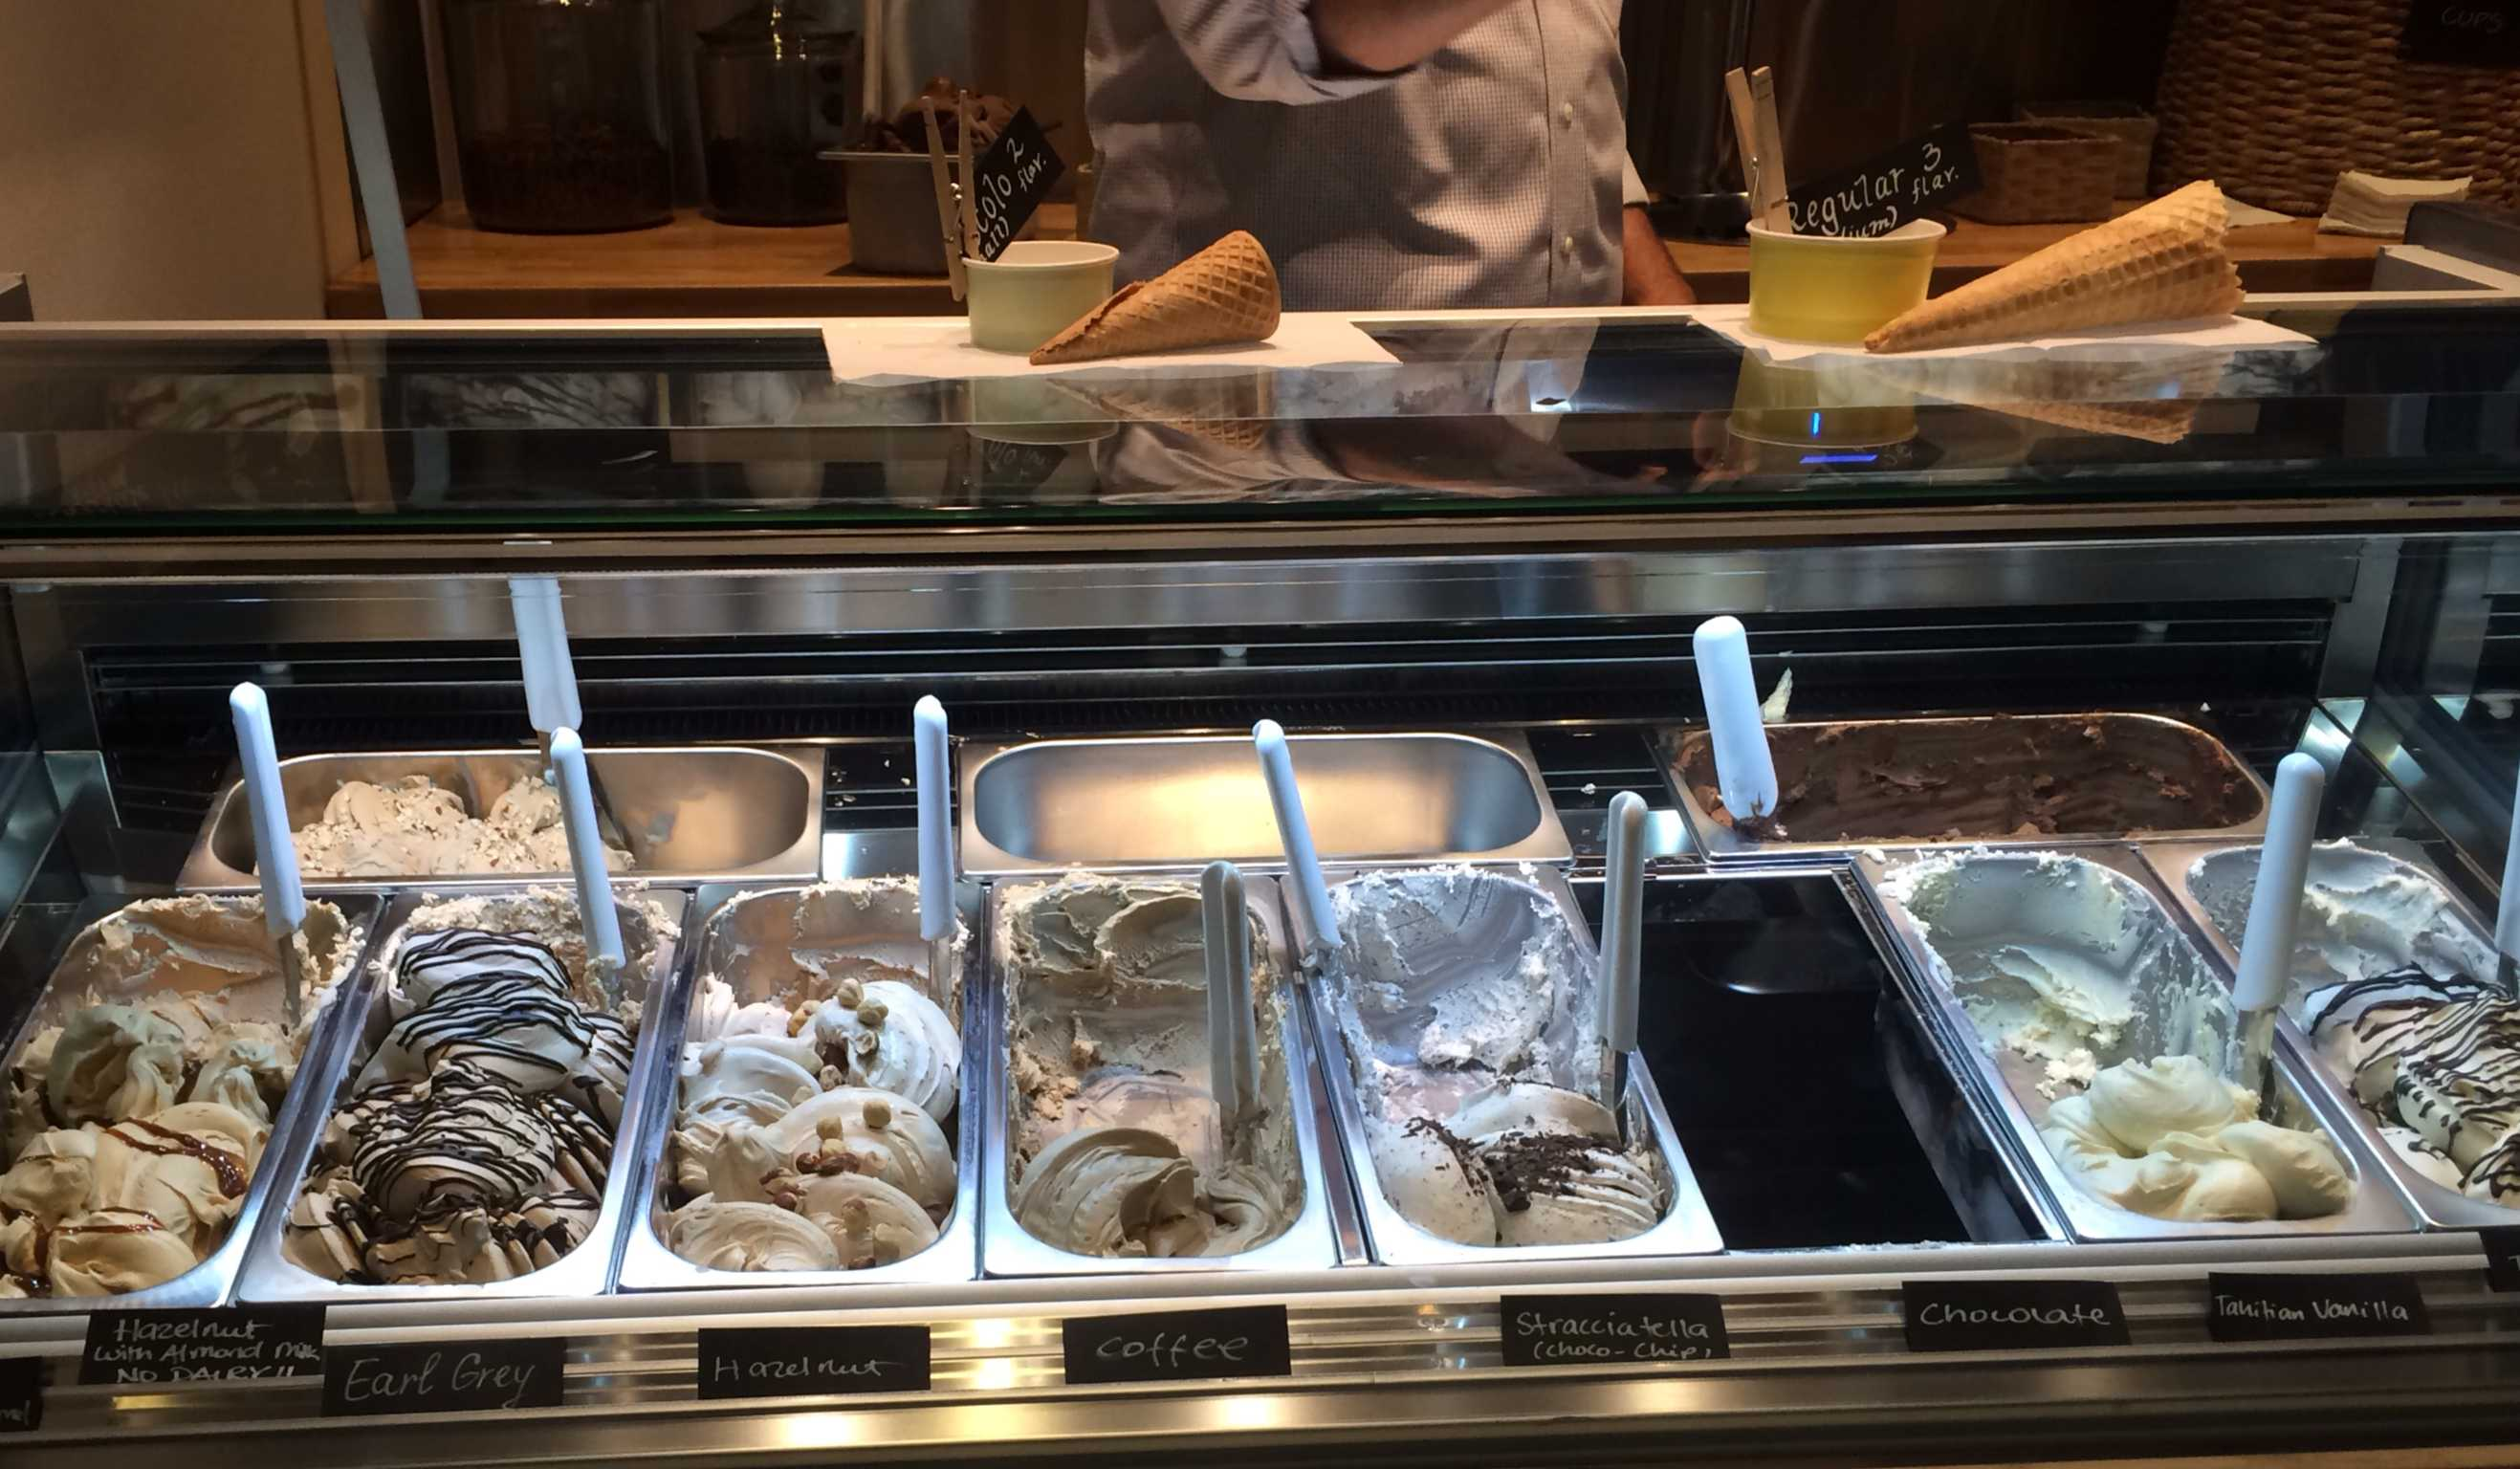 Gelataio displays its various offerings of gelato flavors at the front of the store. Photo by Maddy Jones.